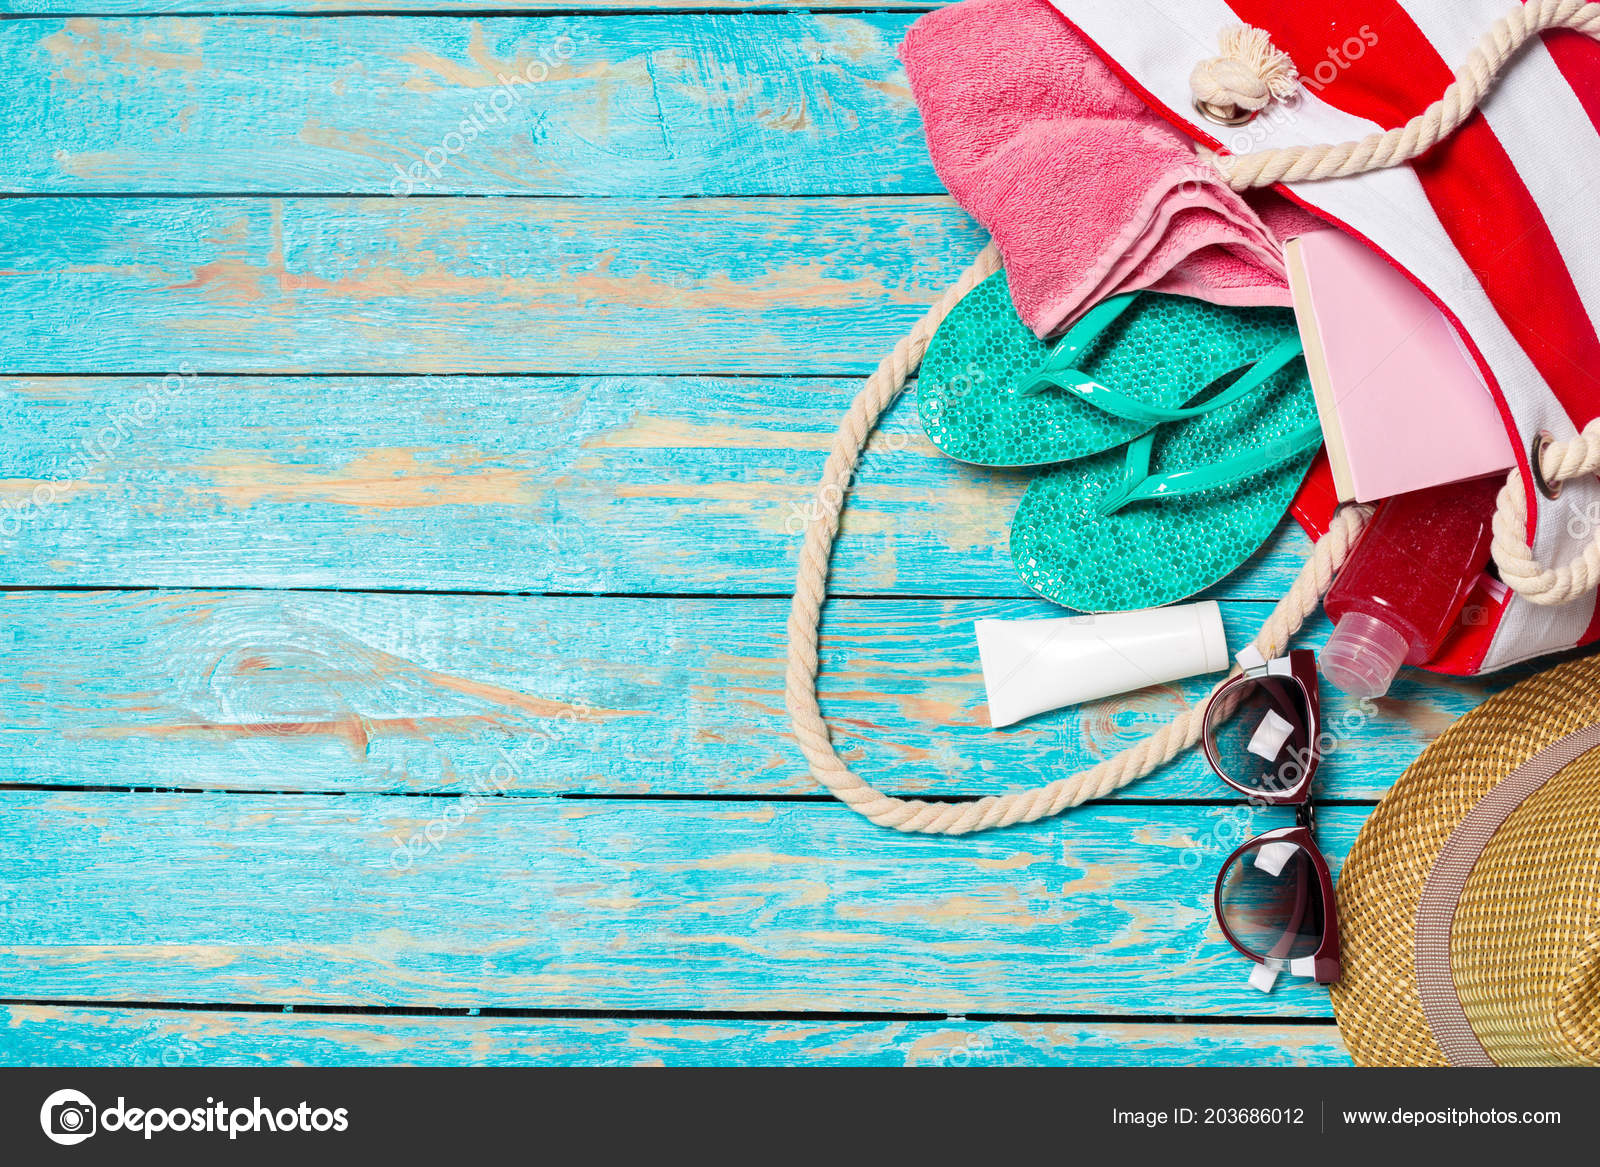 Summer Holiday Background Beach Items Travel Vacation Concept Stock Photo C Fotofabrika 203686012